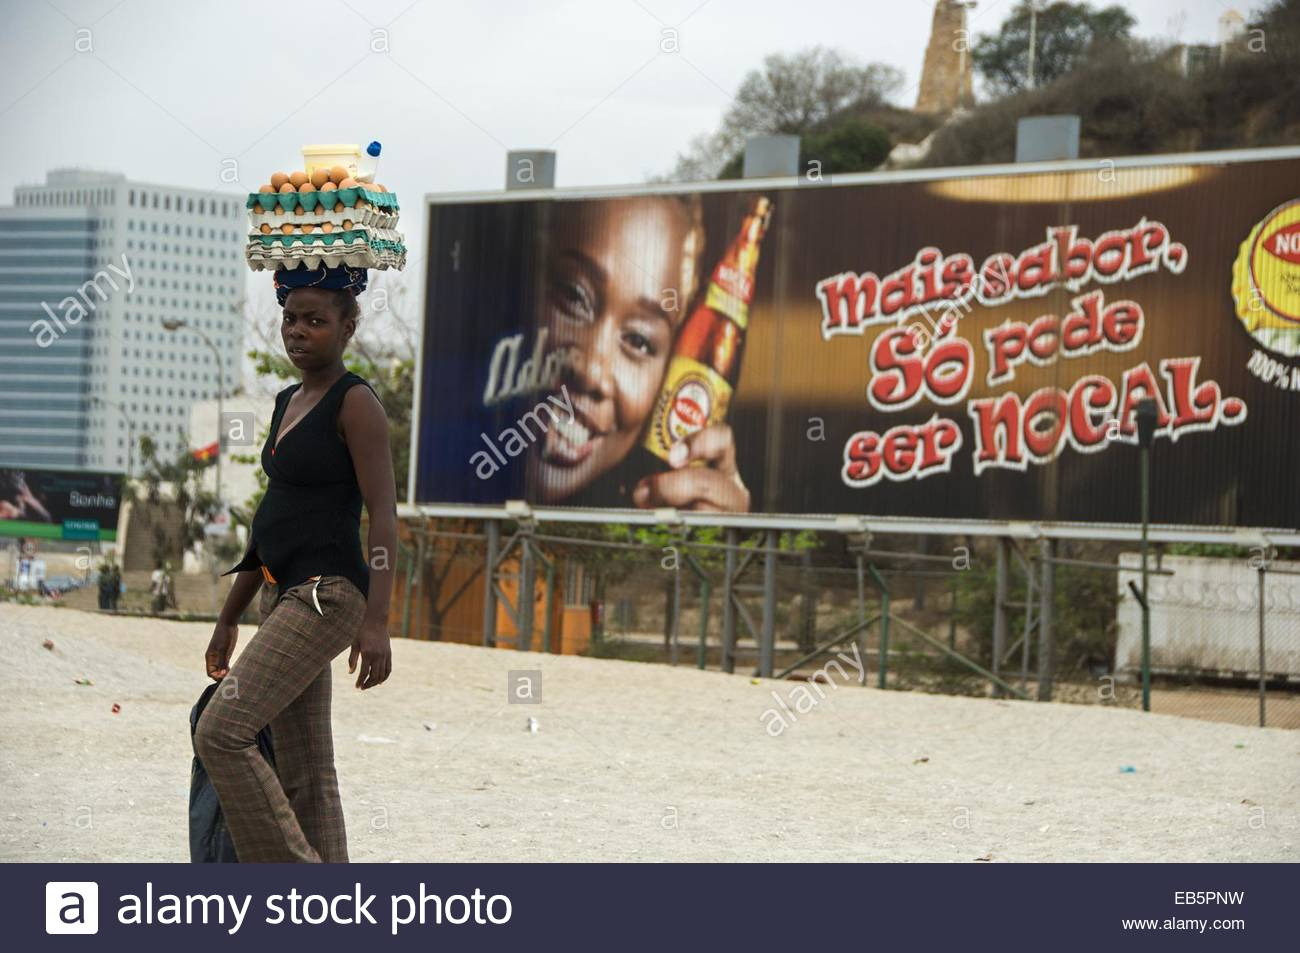 A woman dressed in tartan trousers carries milk, butter and eggs on her head while walking through the city of Luanda. - Stock Image